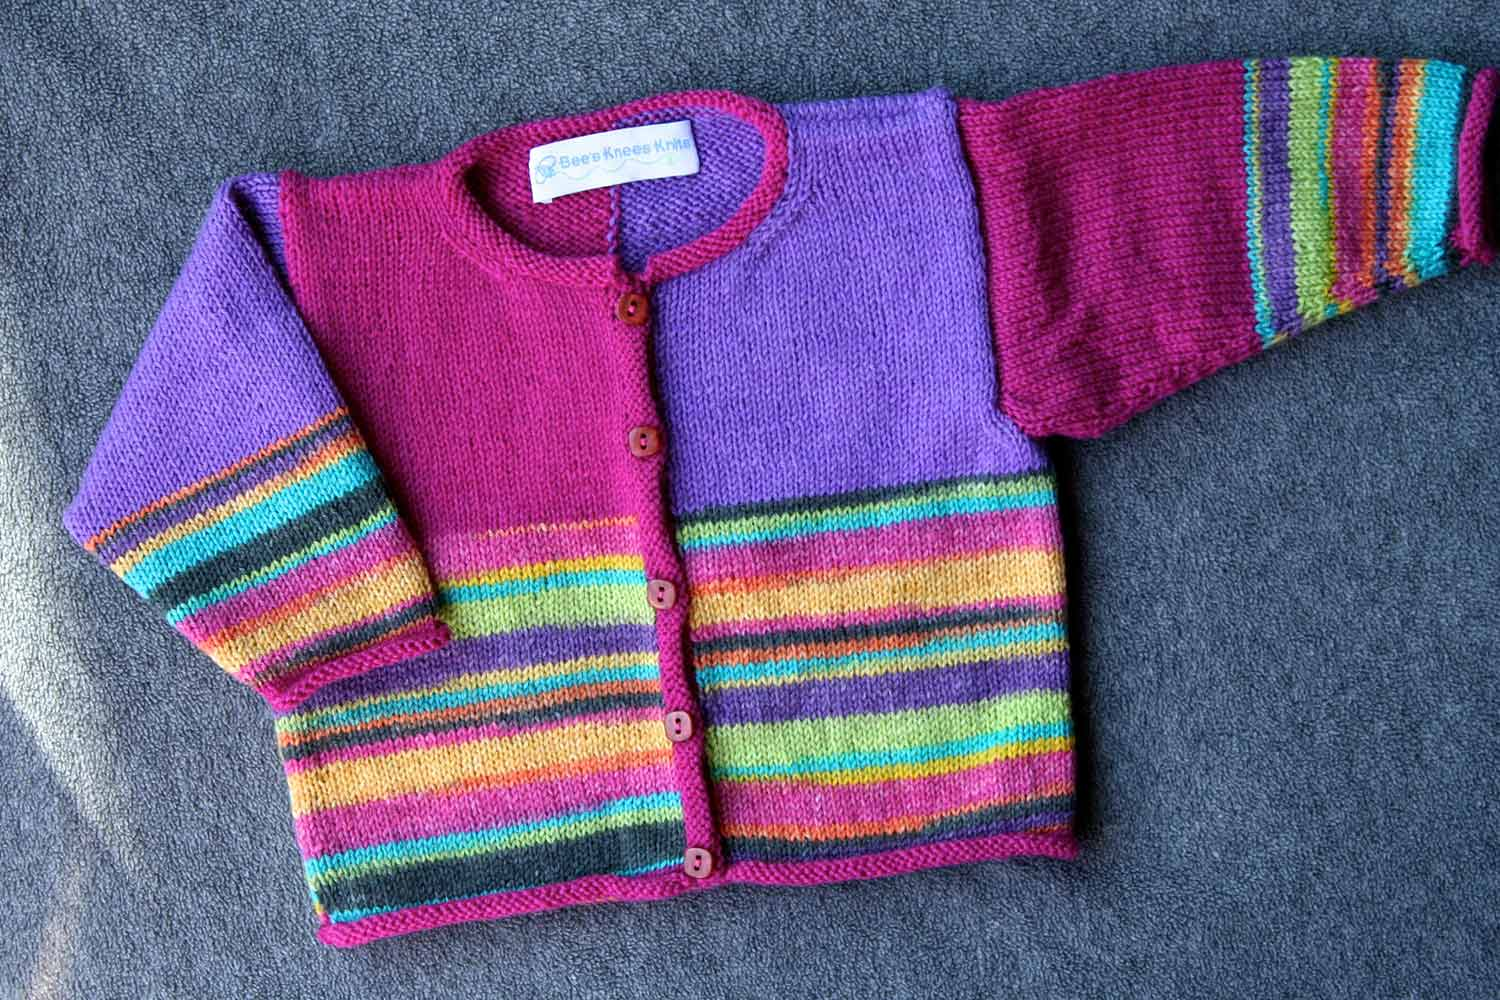 Baby cardigan in brightly coloured stripes and purple and pink colour blocks.